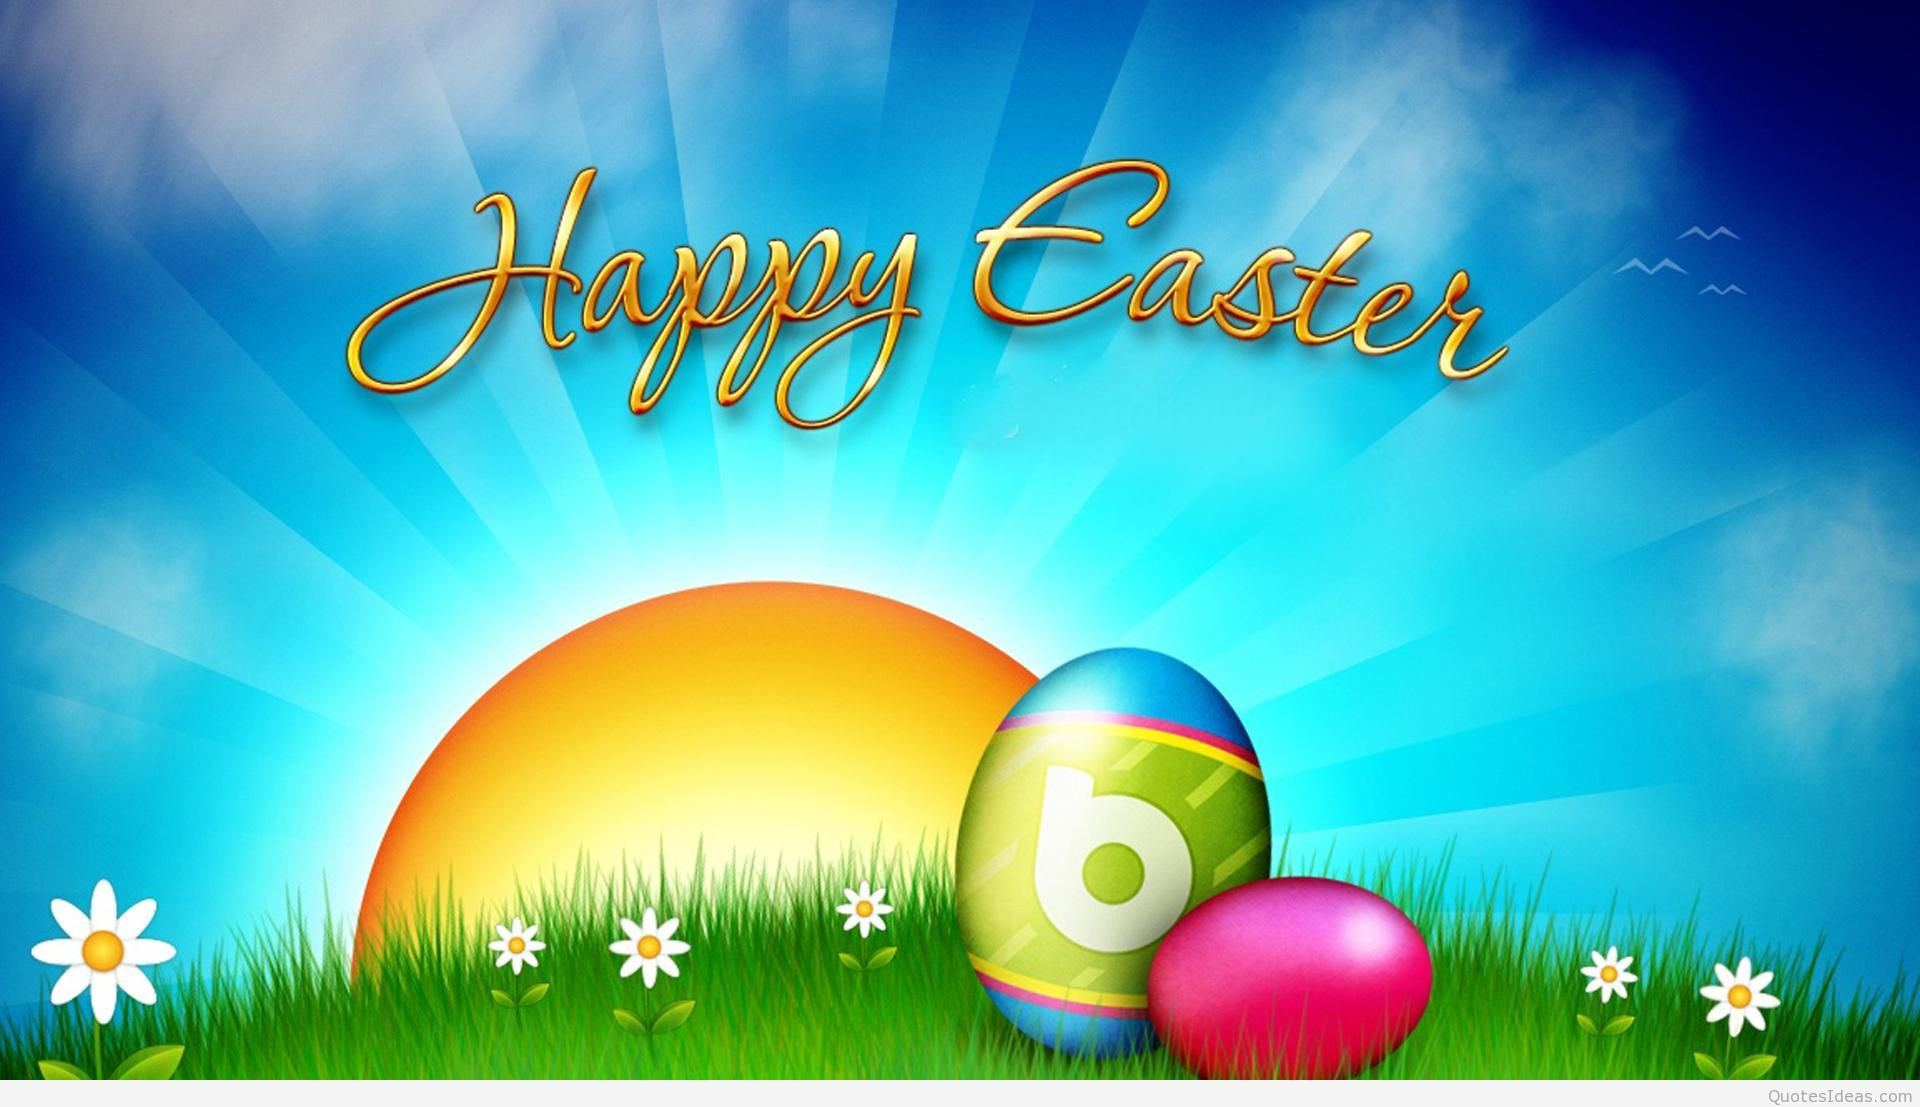 Happy Easter sunday wallpapers hd wishes 1920x1107